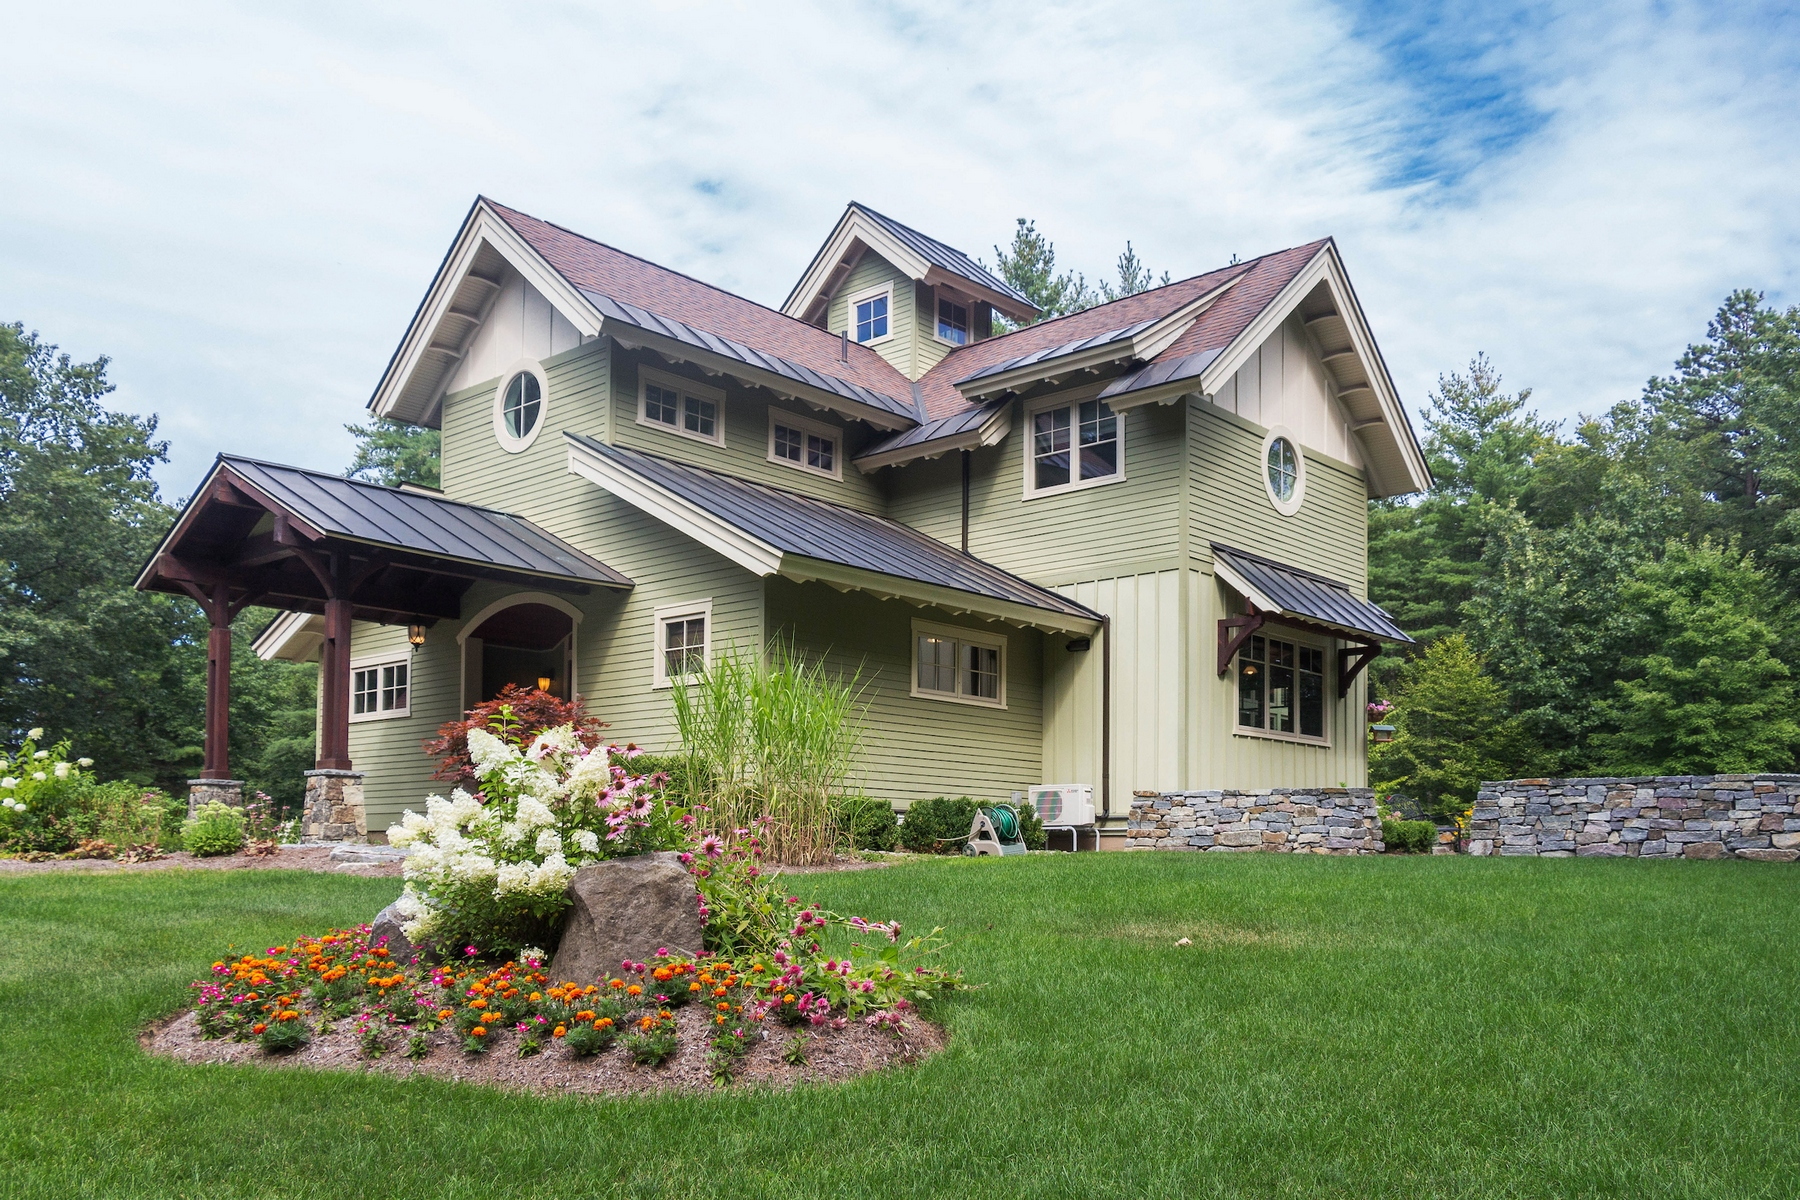 Single Family Home for Sale at Custom Built Home in Saratoga Springs 149 Louden Rd Saratoga Springs, New York 12866 United States